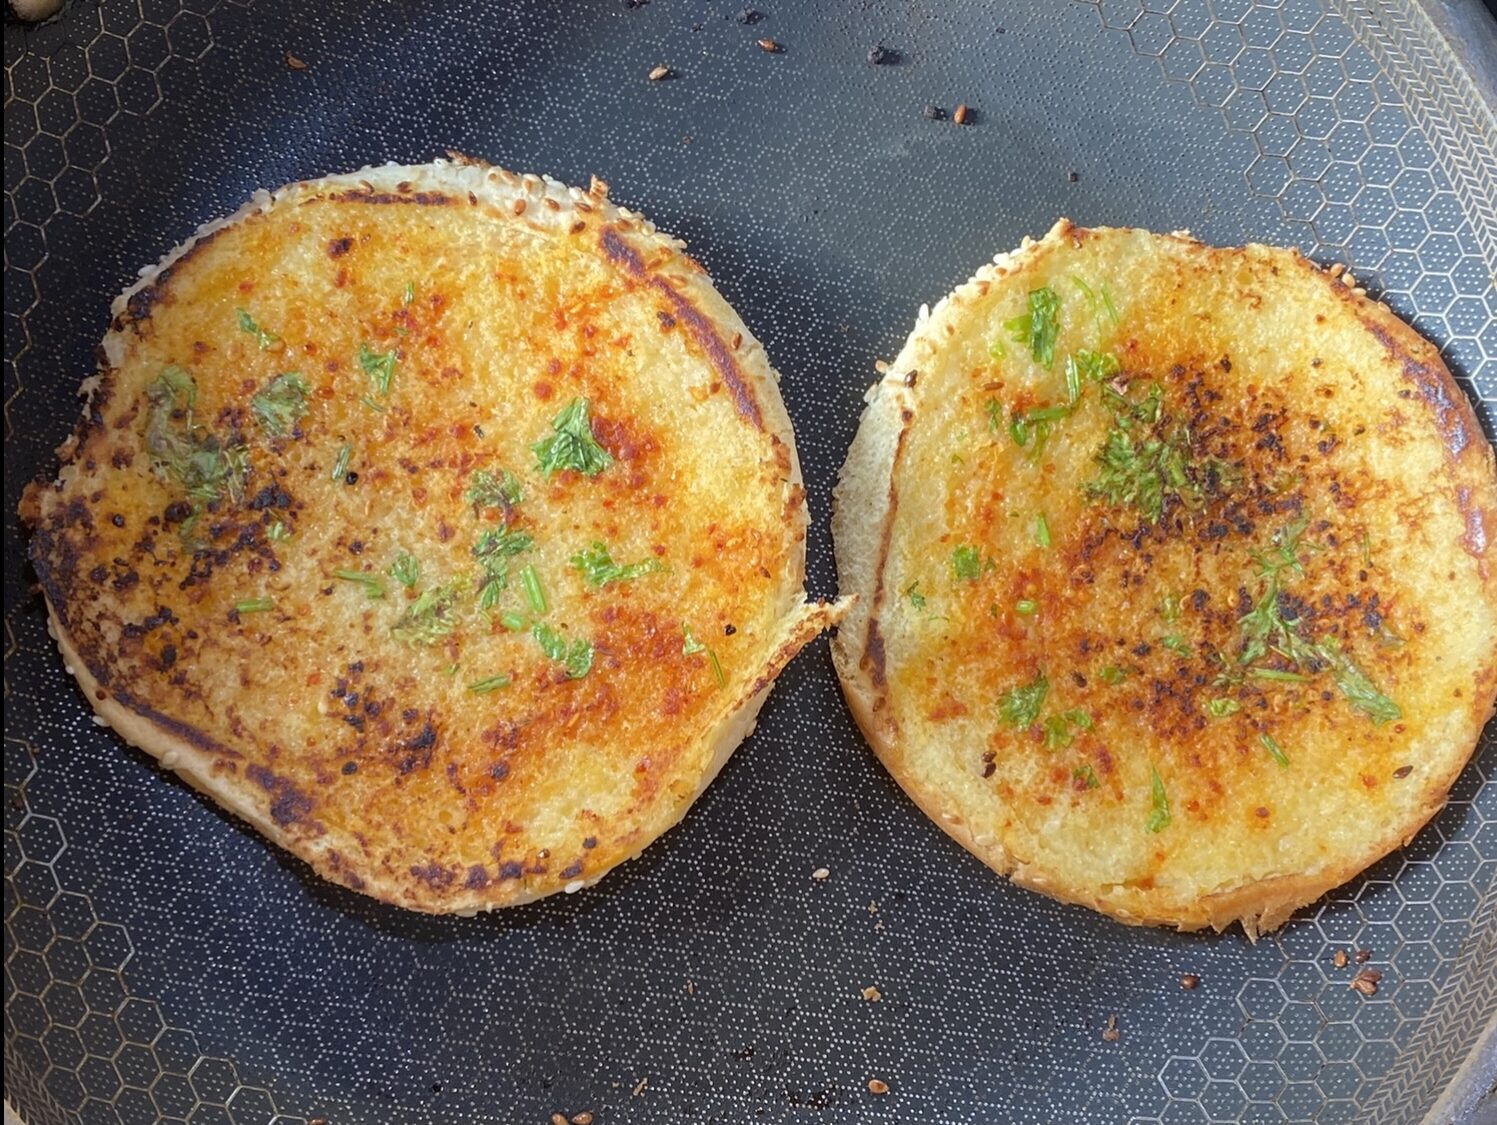 grilled burger bread in a pan with butter, red chili powder, cilantro